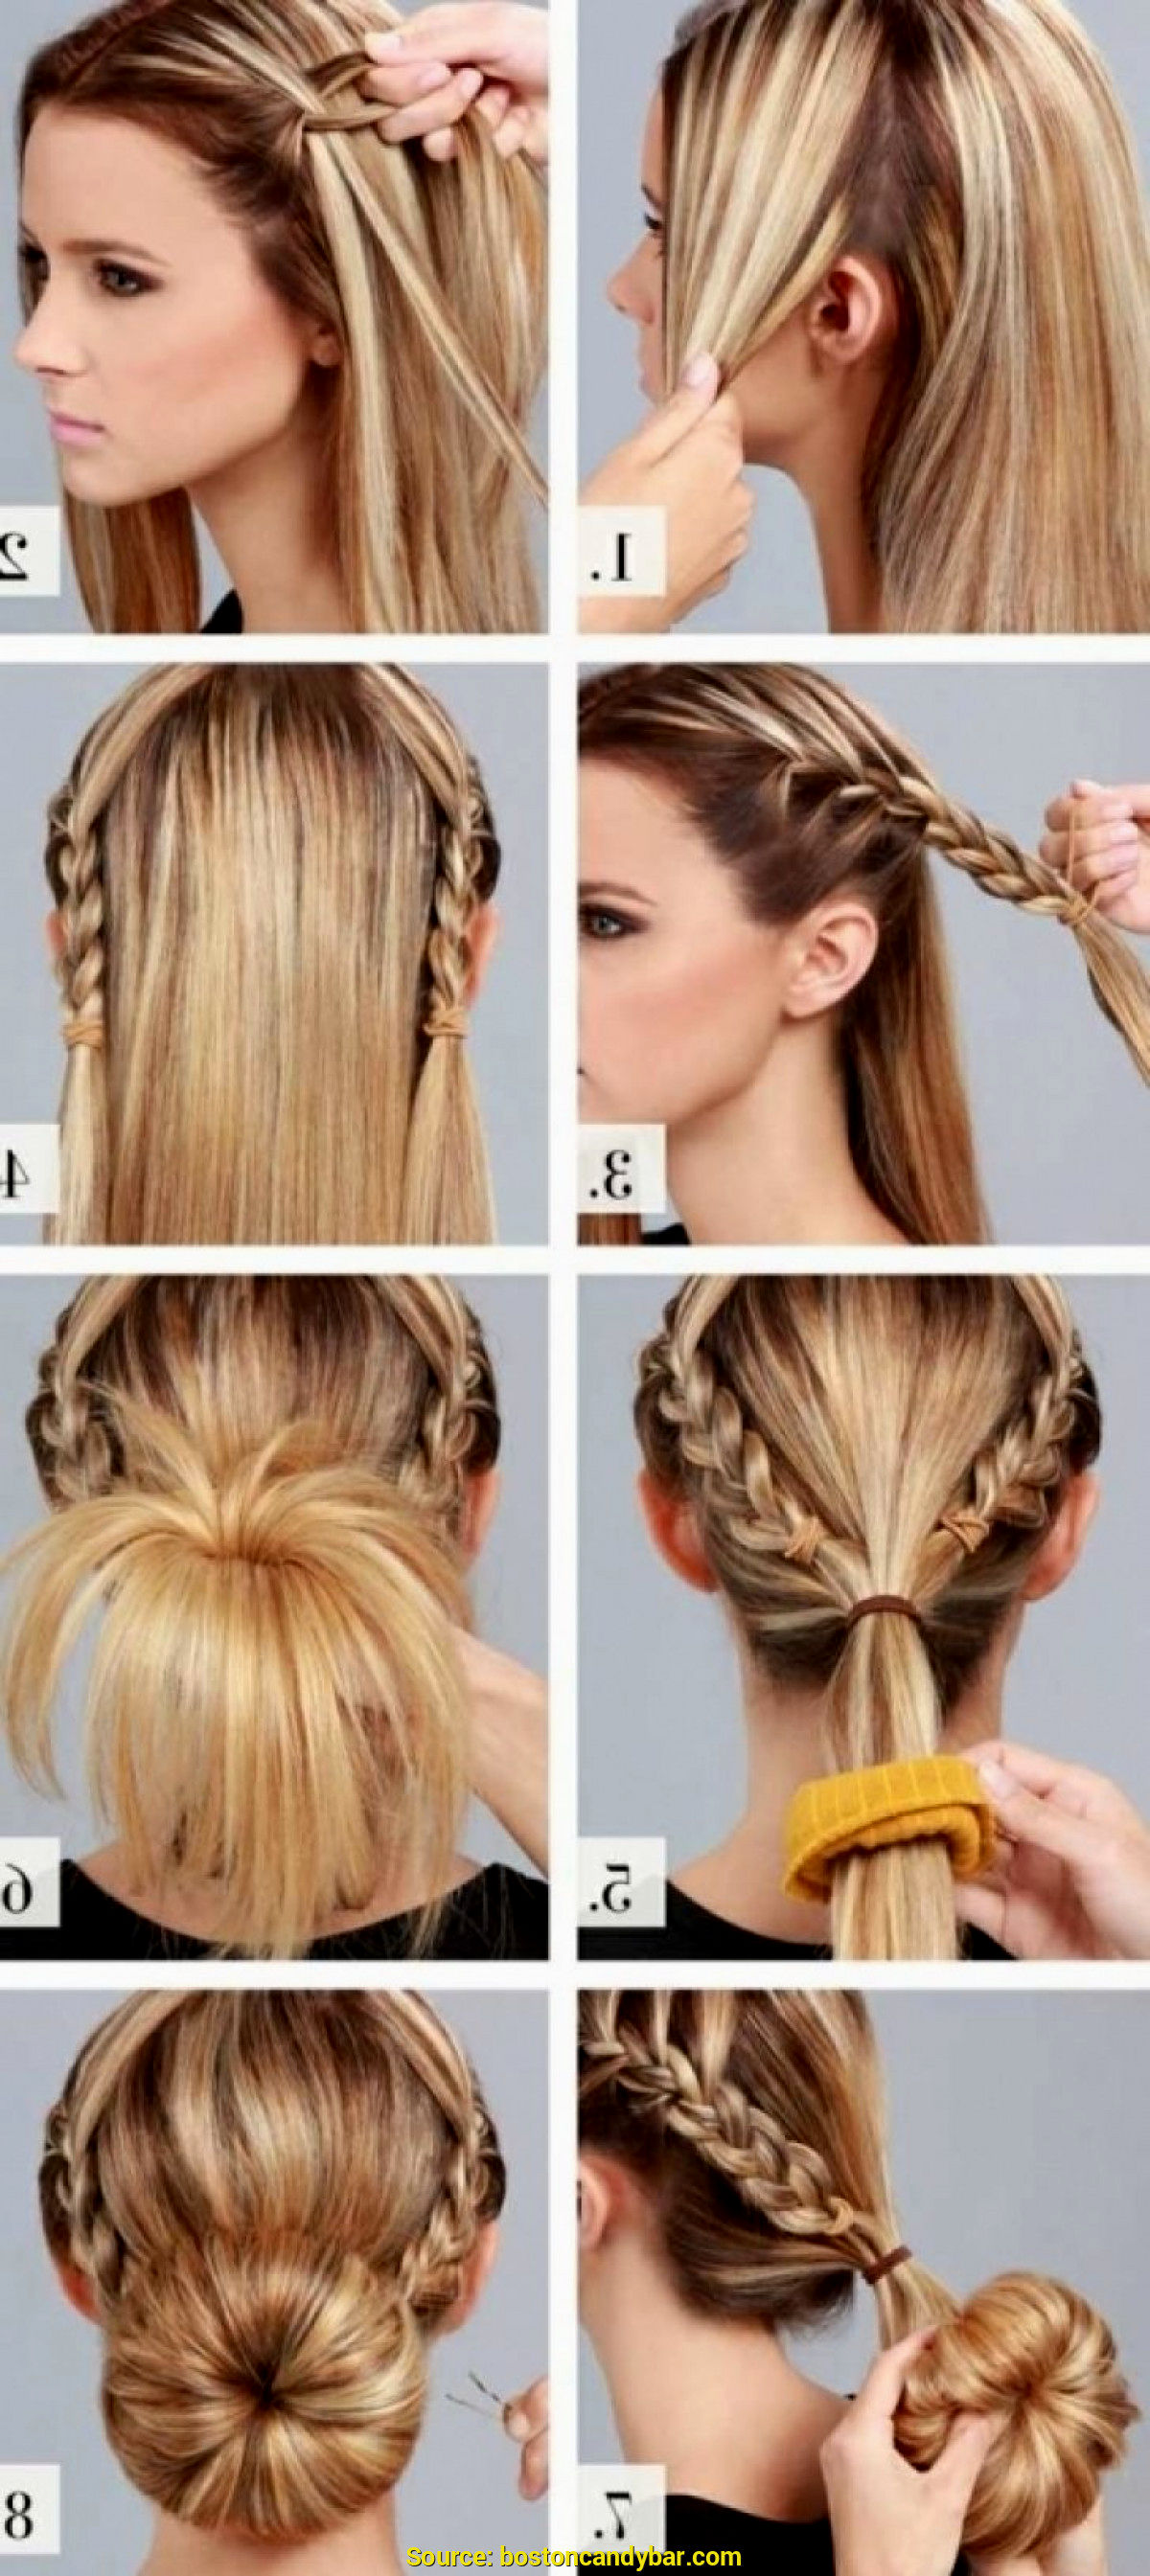 terribly cool hairstyles for short hair to make yourself picture-unique hairstyles for short hair to make yourself concepts